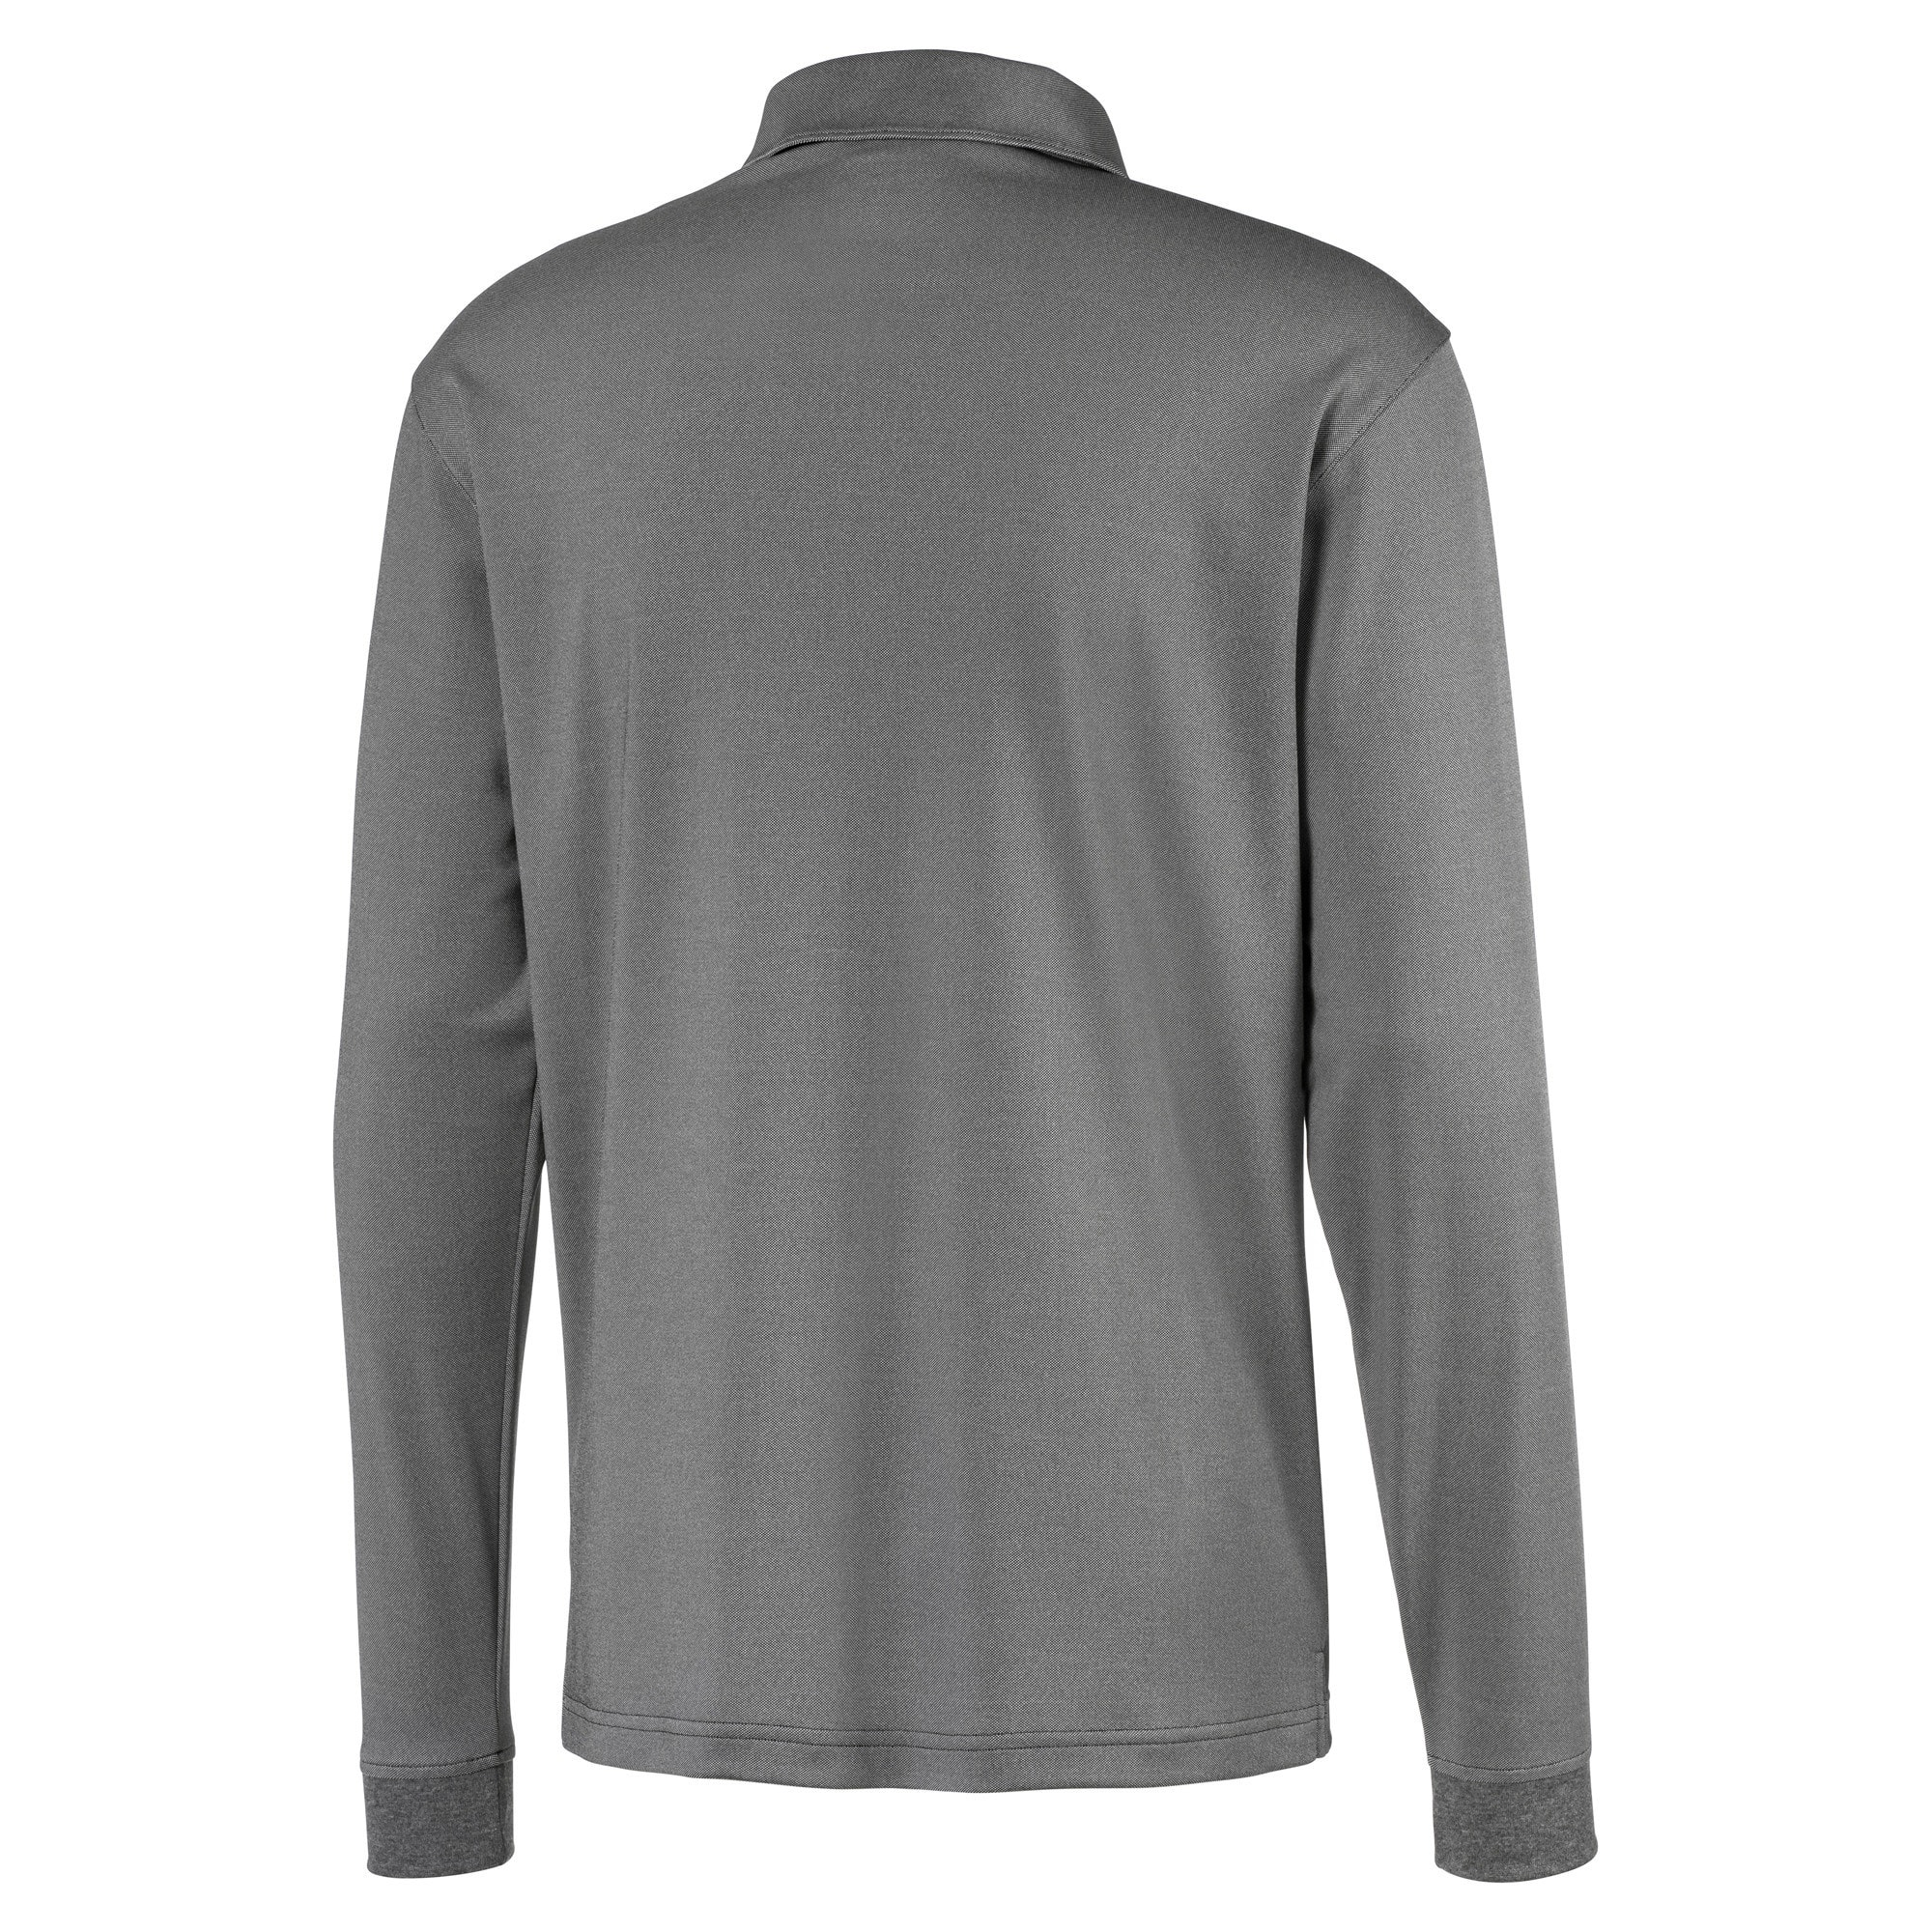 Thumbnail 6 of Long Sleeve Men's Golf Polo, Puma Black Heather, medium